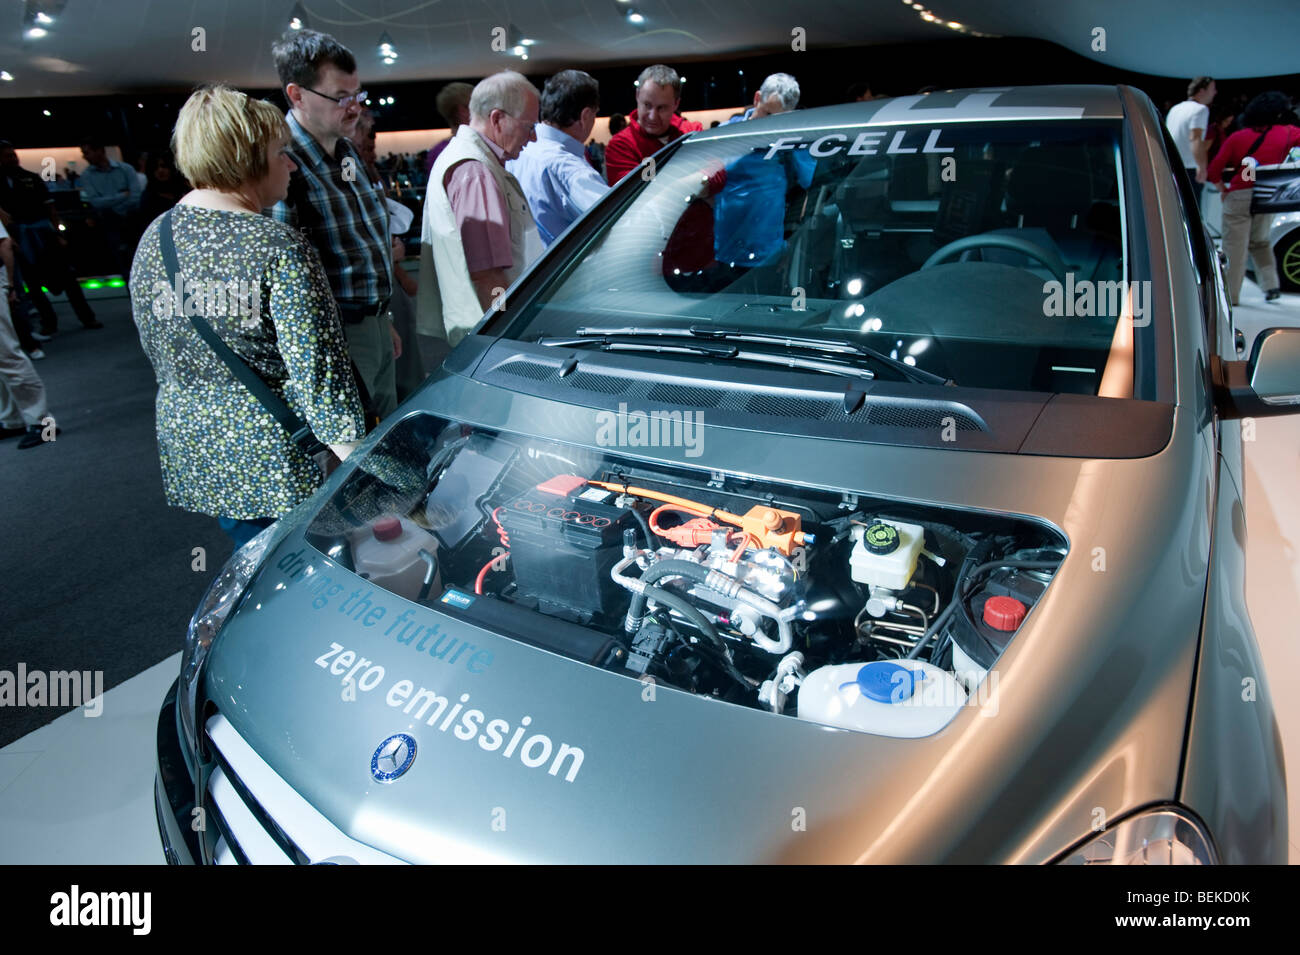 Fuel Cell Car Stock Photos & Fuel Cell Car Stock Images - Alamy